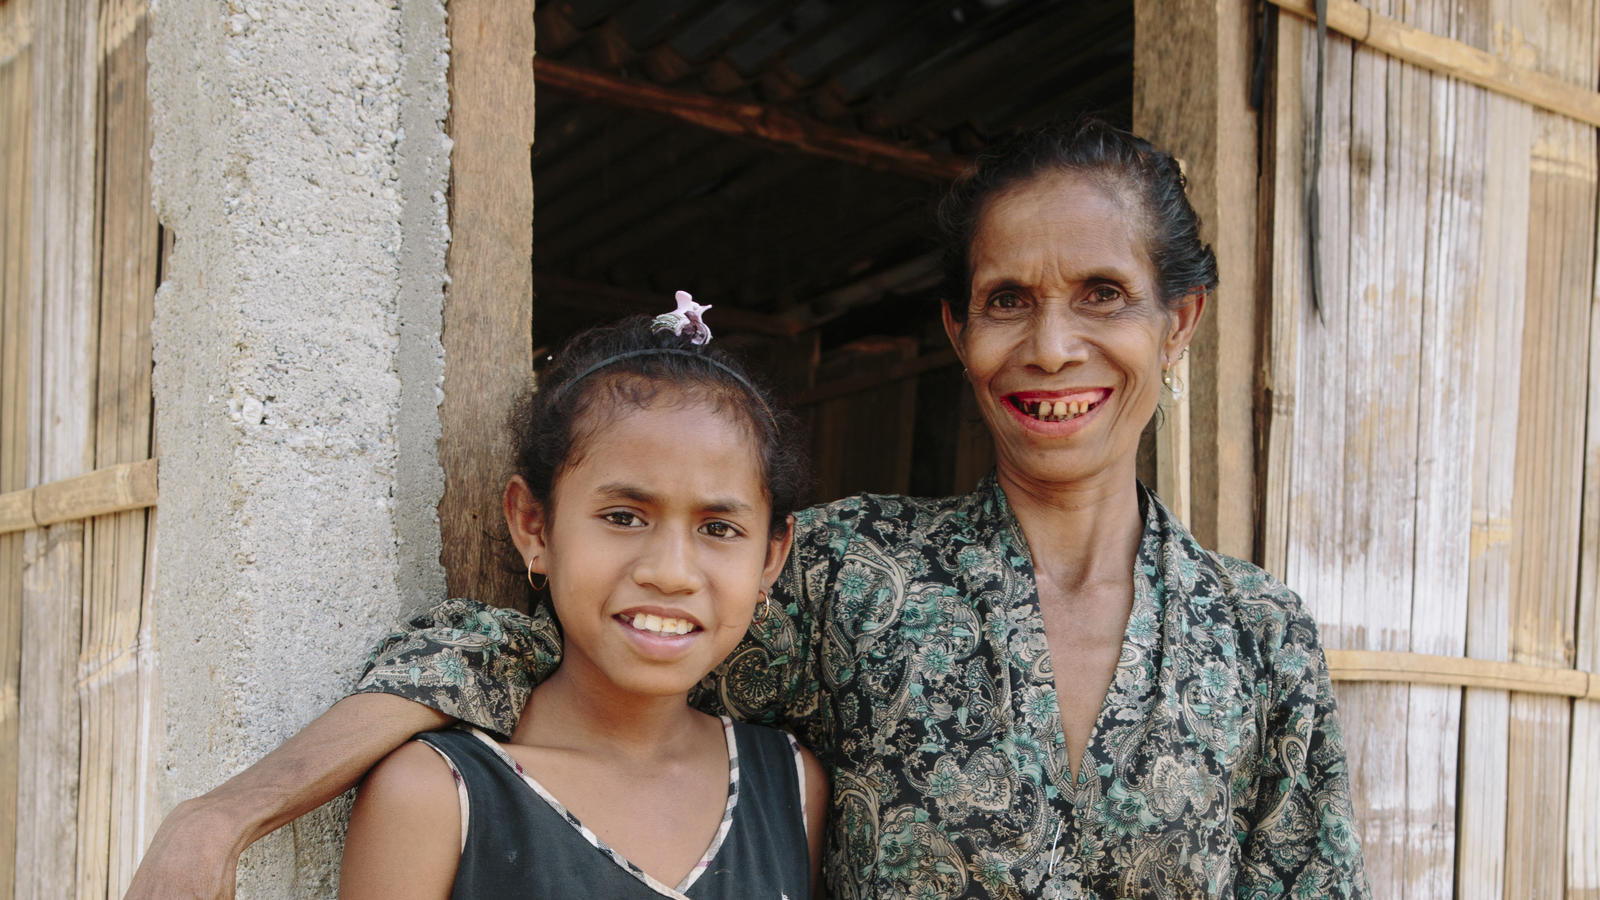 Twelve year old Efijenia and her mother Evalina